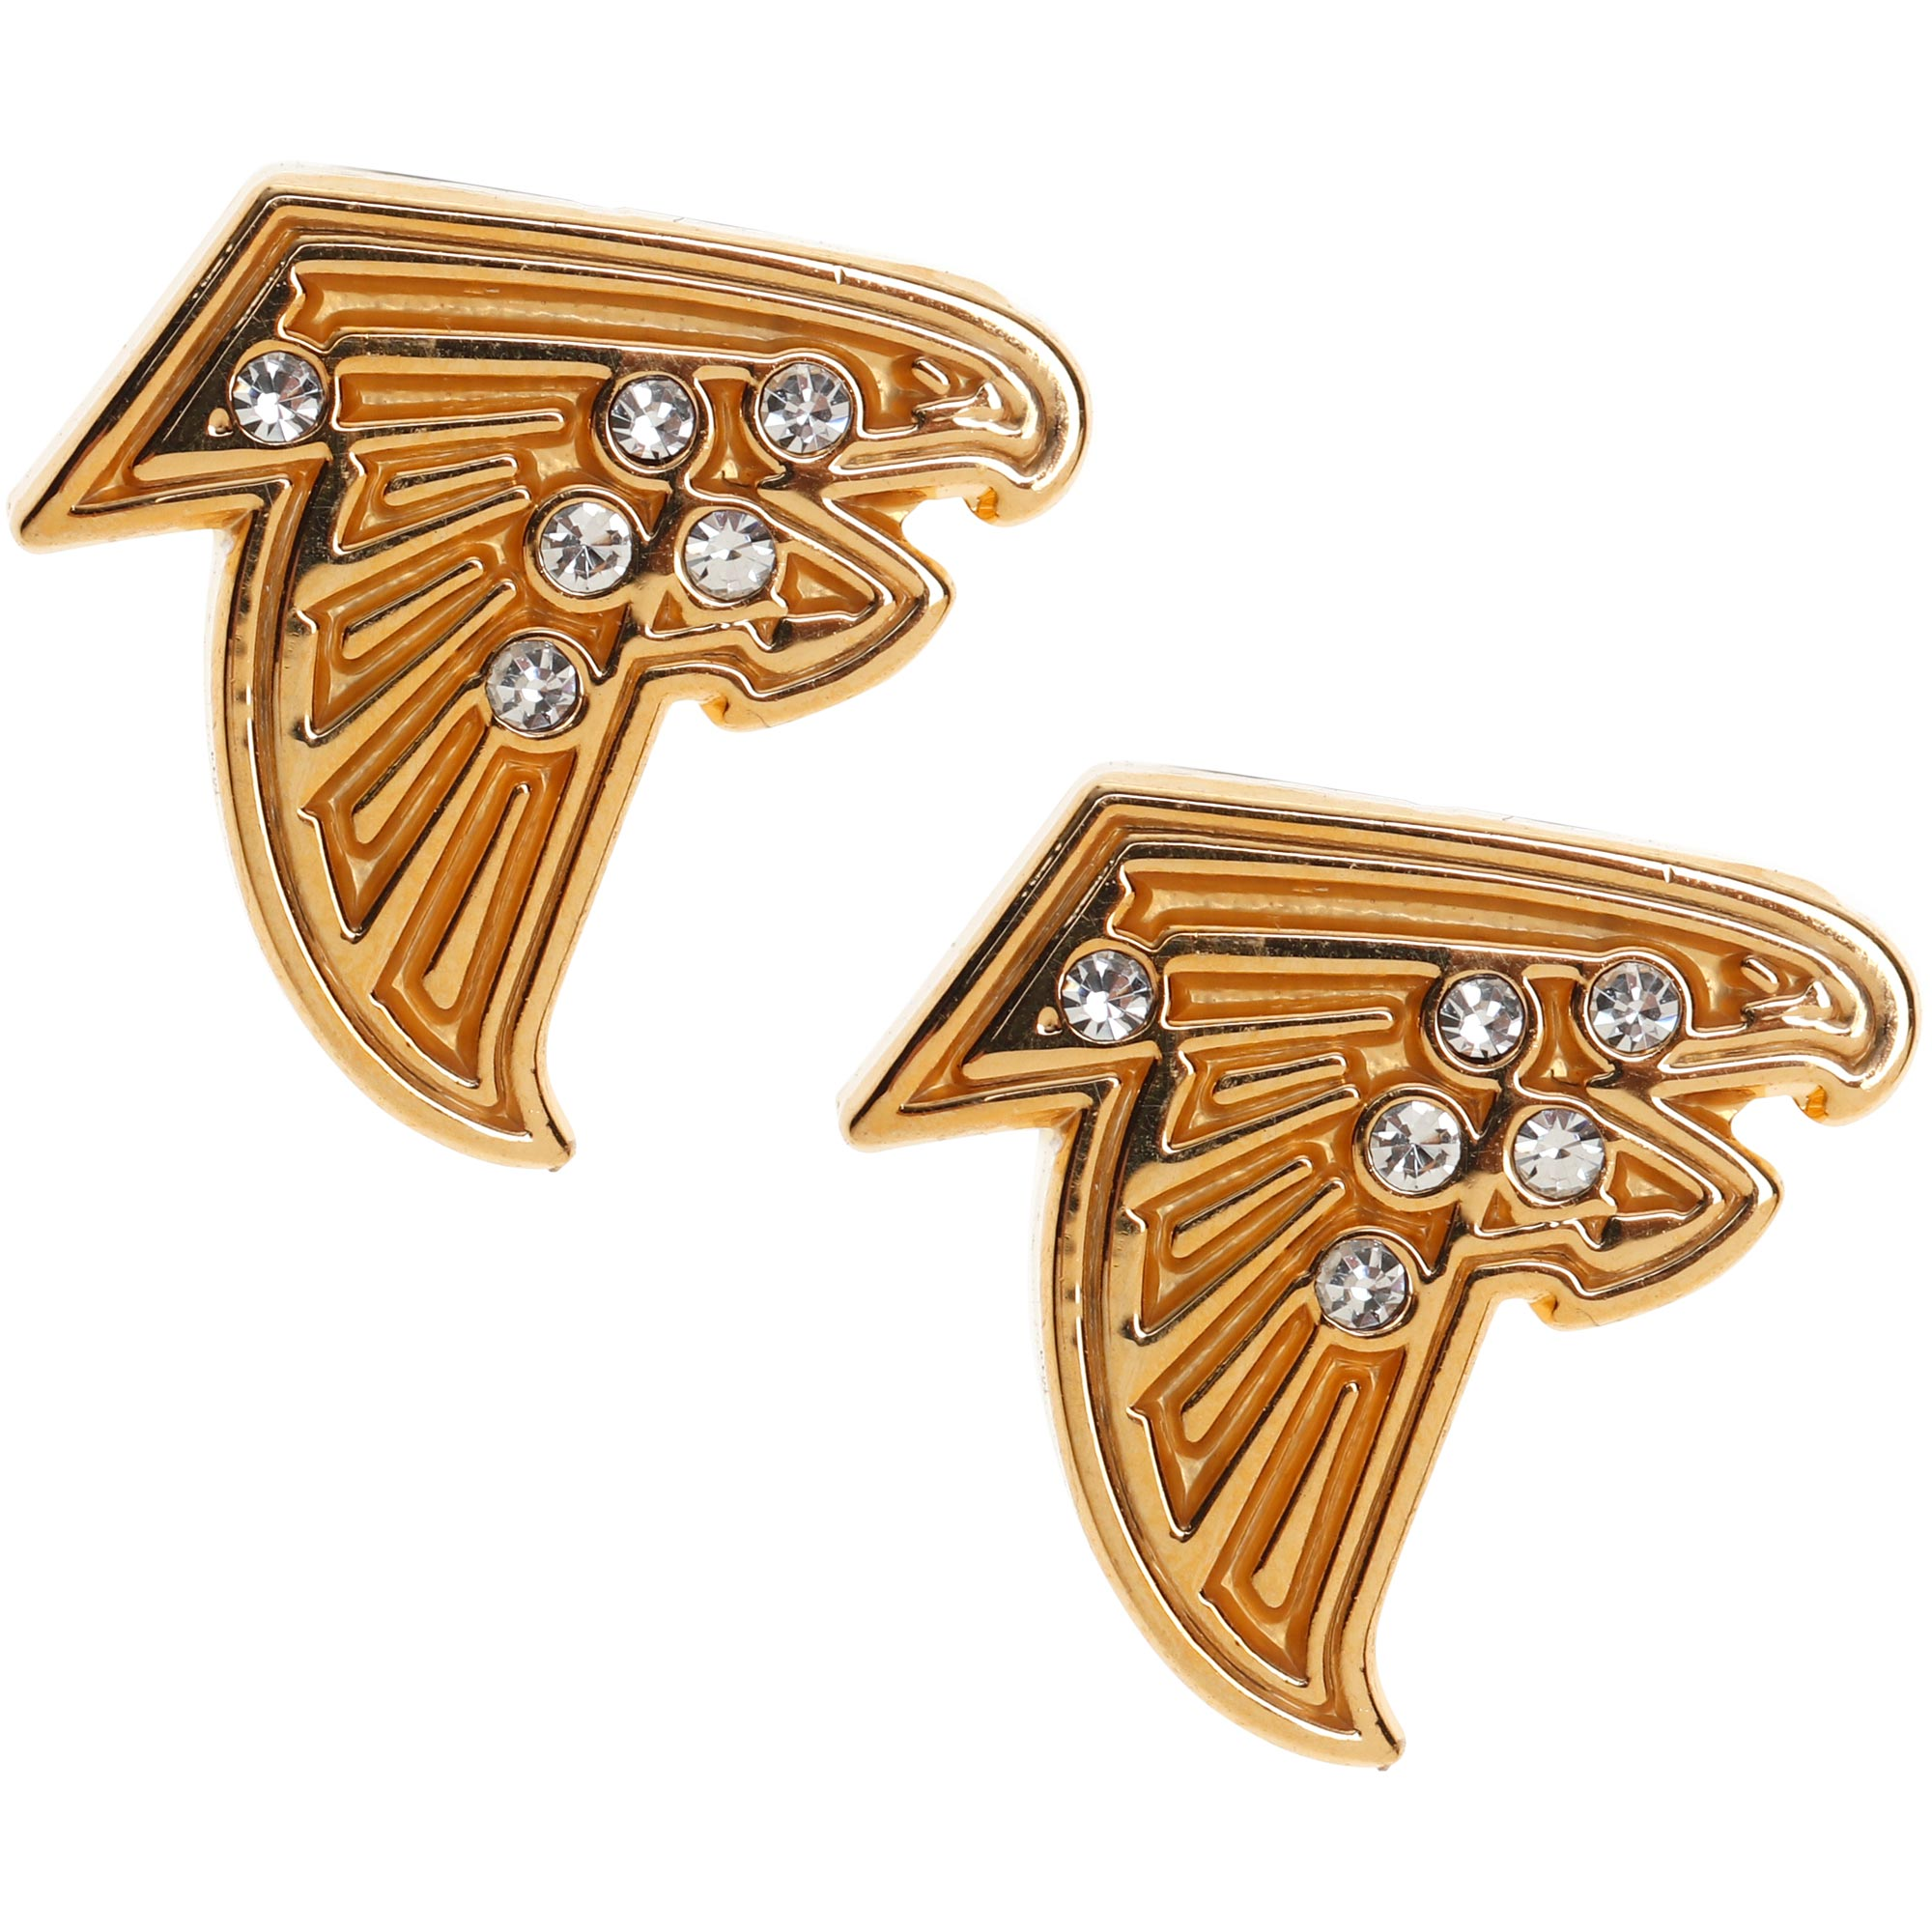 Atlanta Falcons WinCraft Women's Crystal Pave Earrings - Gold - No Size